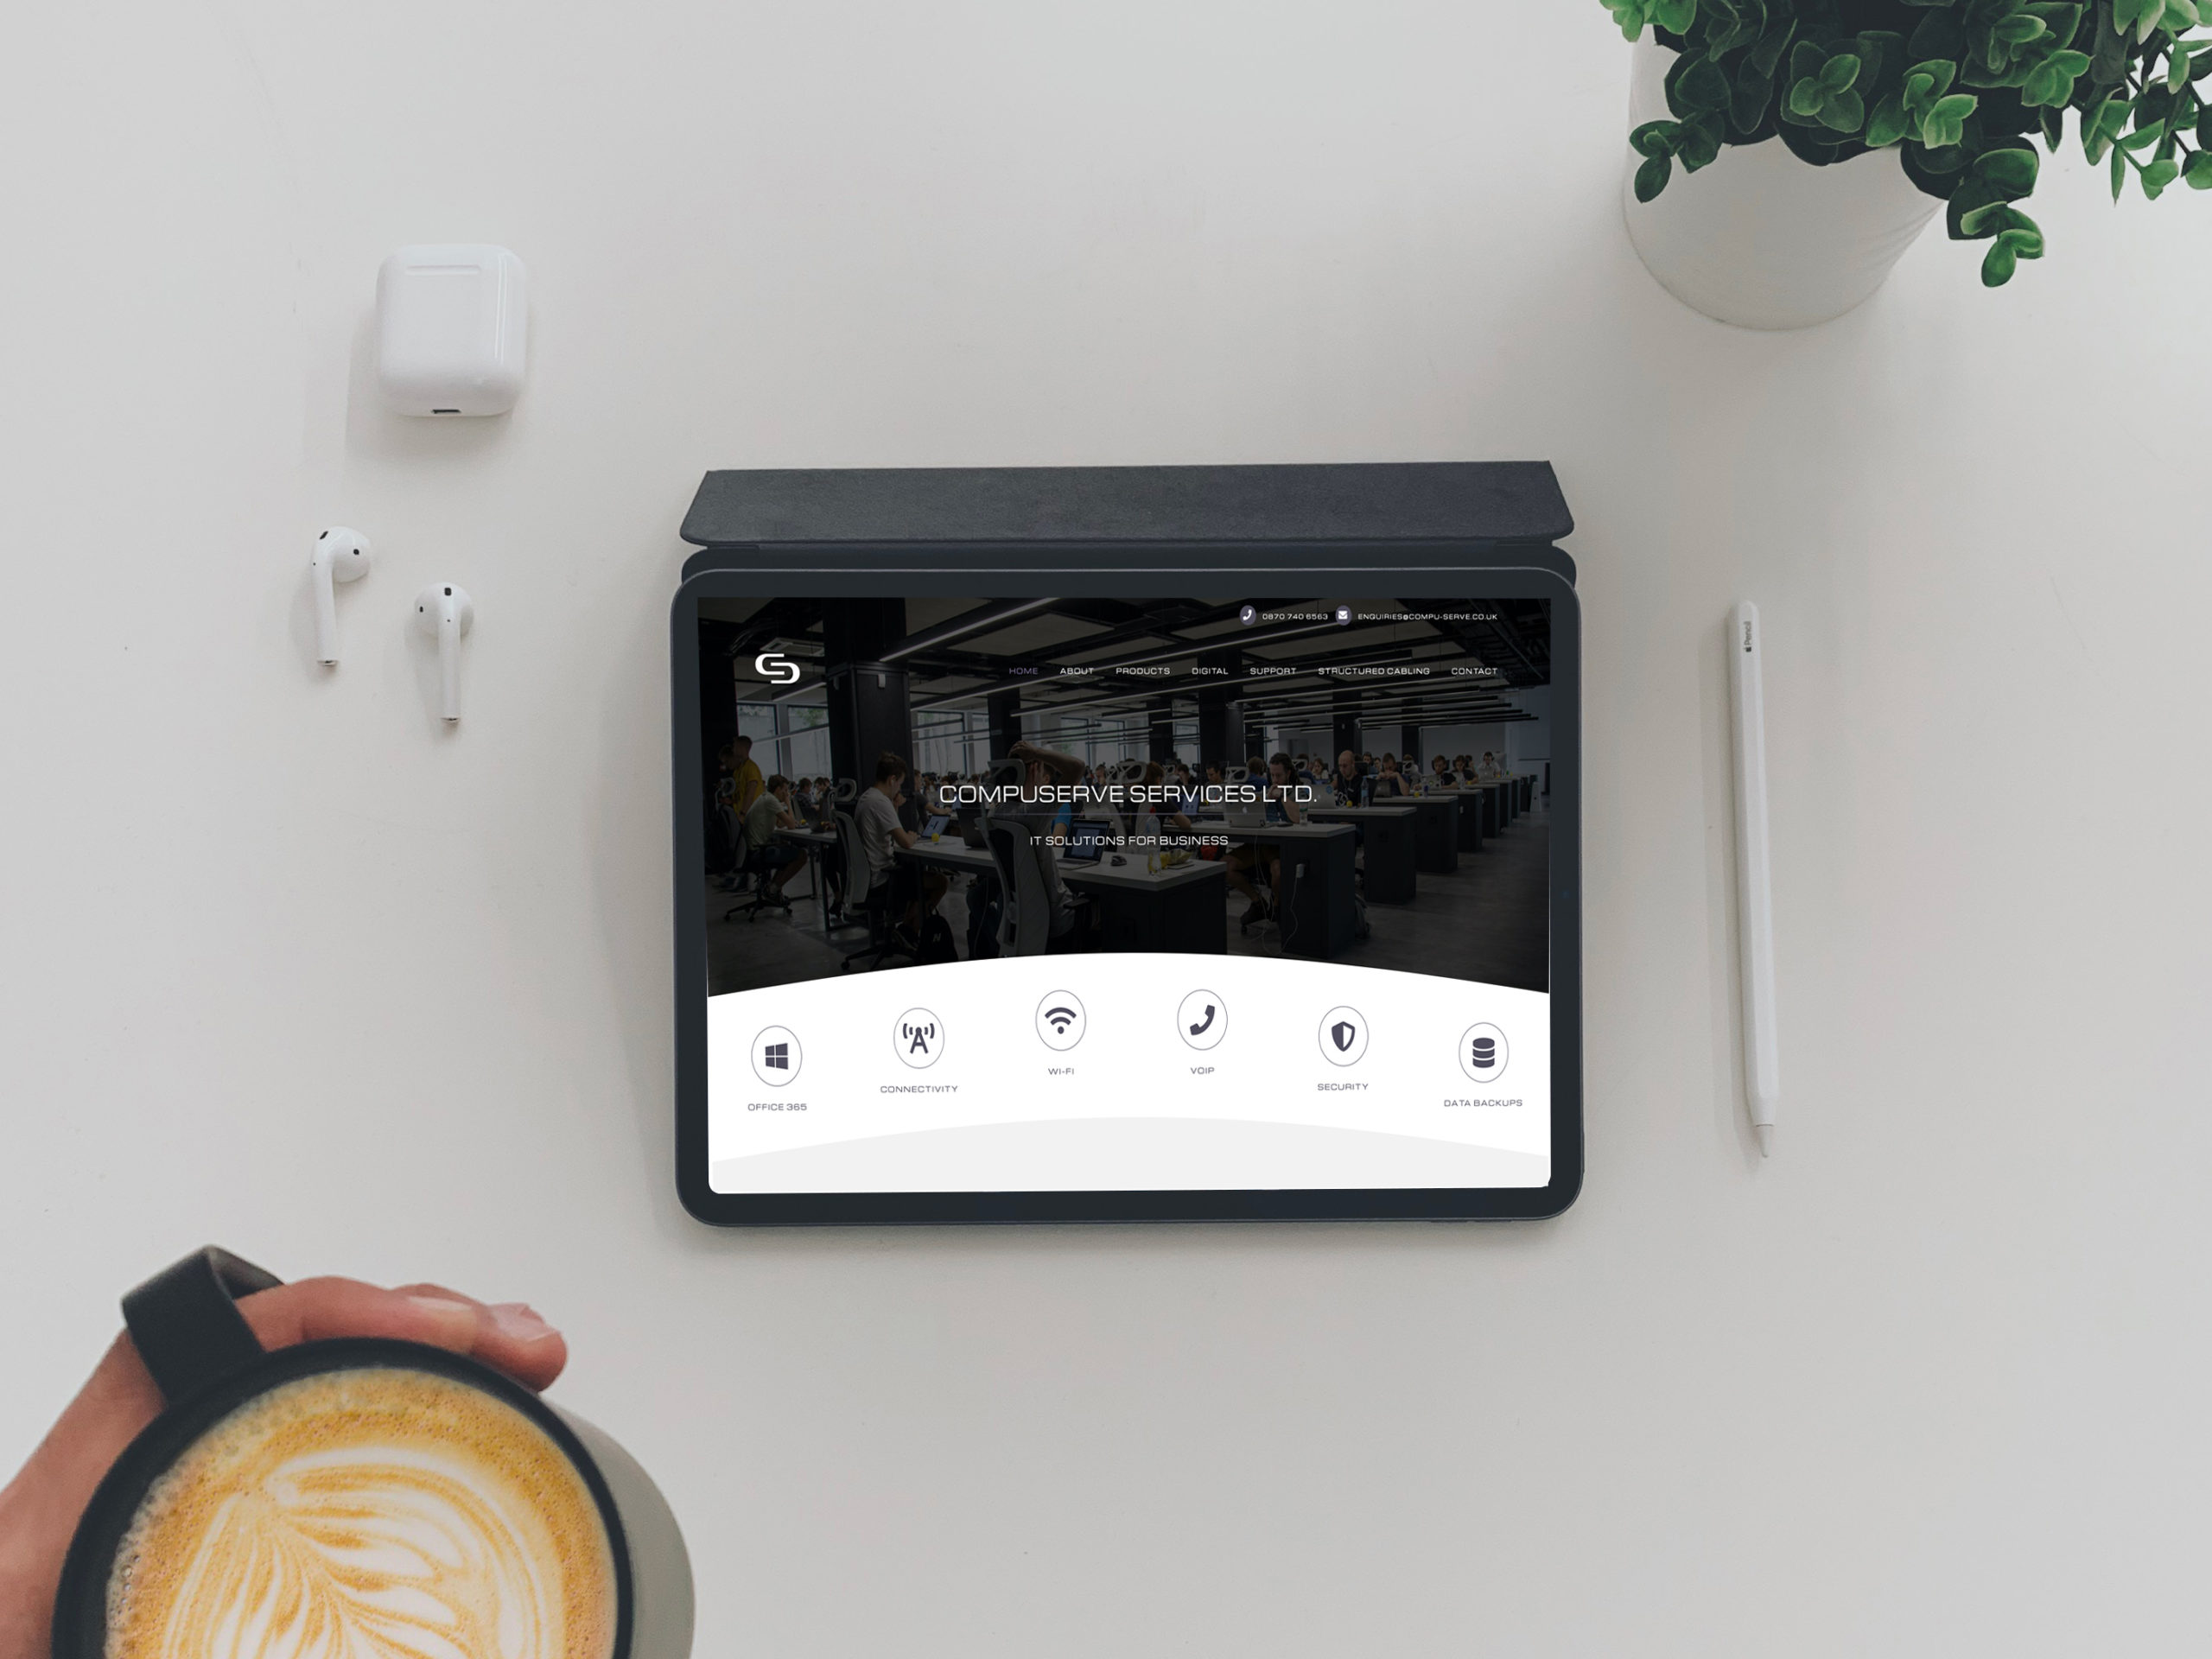 compuserve | full digital service - Free Top View CoffeJe With iPad Mockup scaled - Compuserve | full digital service